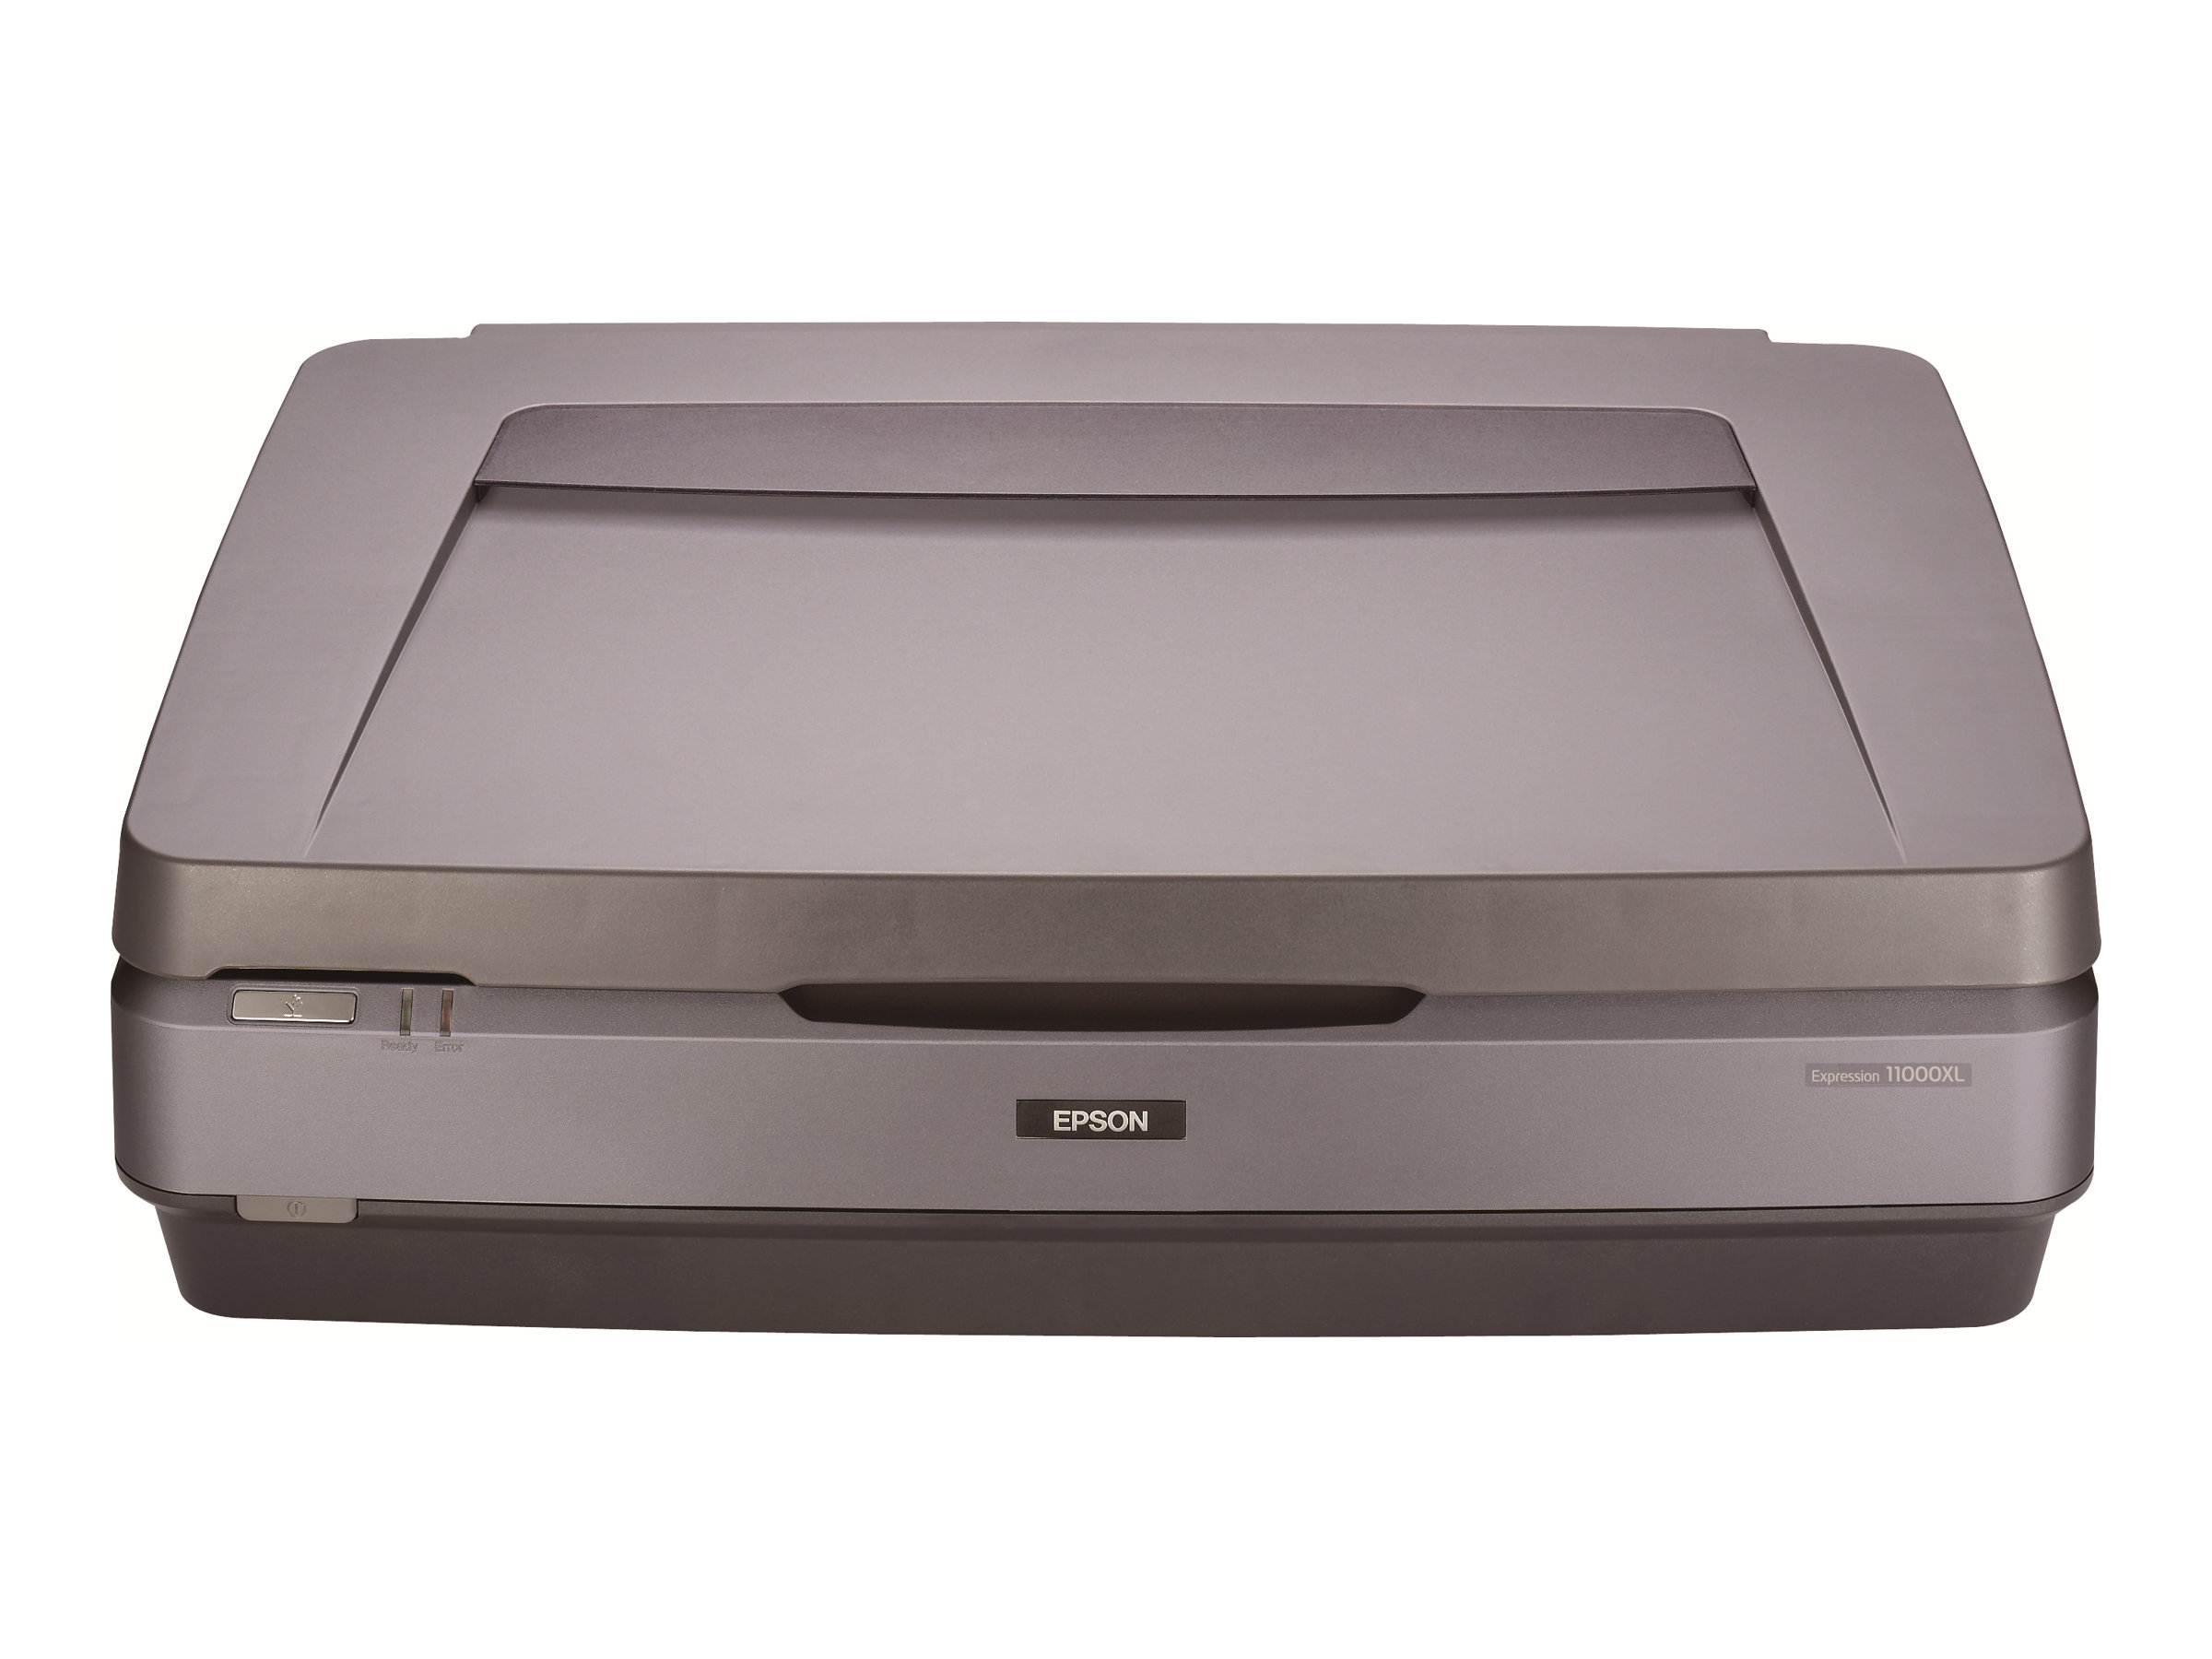 EPSON Expression 11000XL Pro Scanner A3